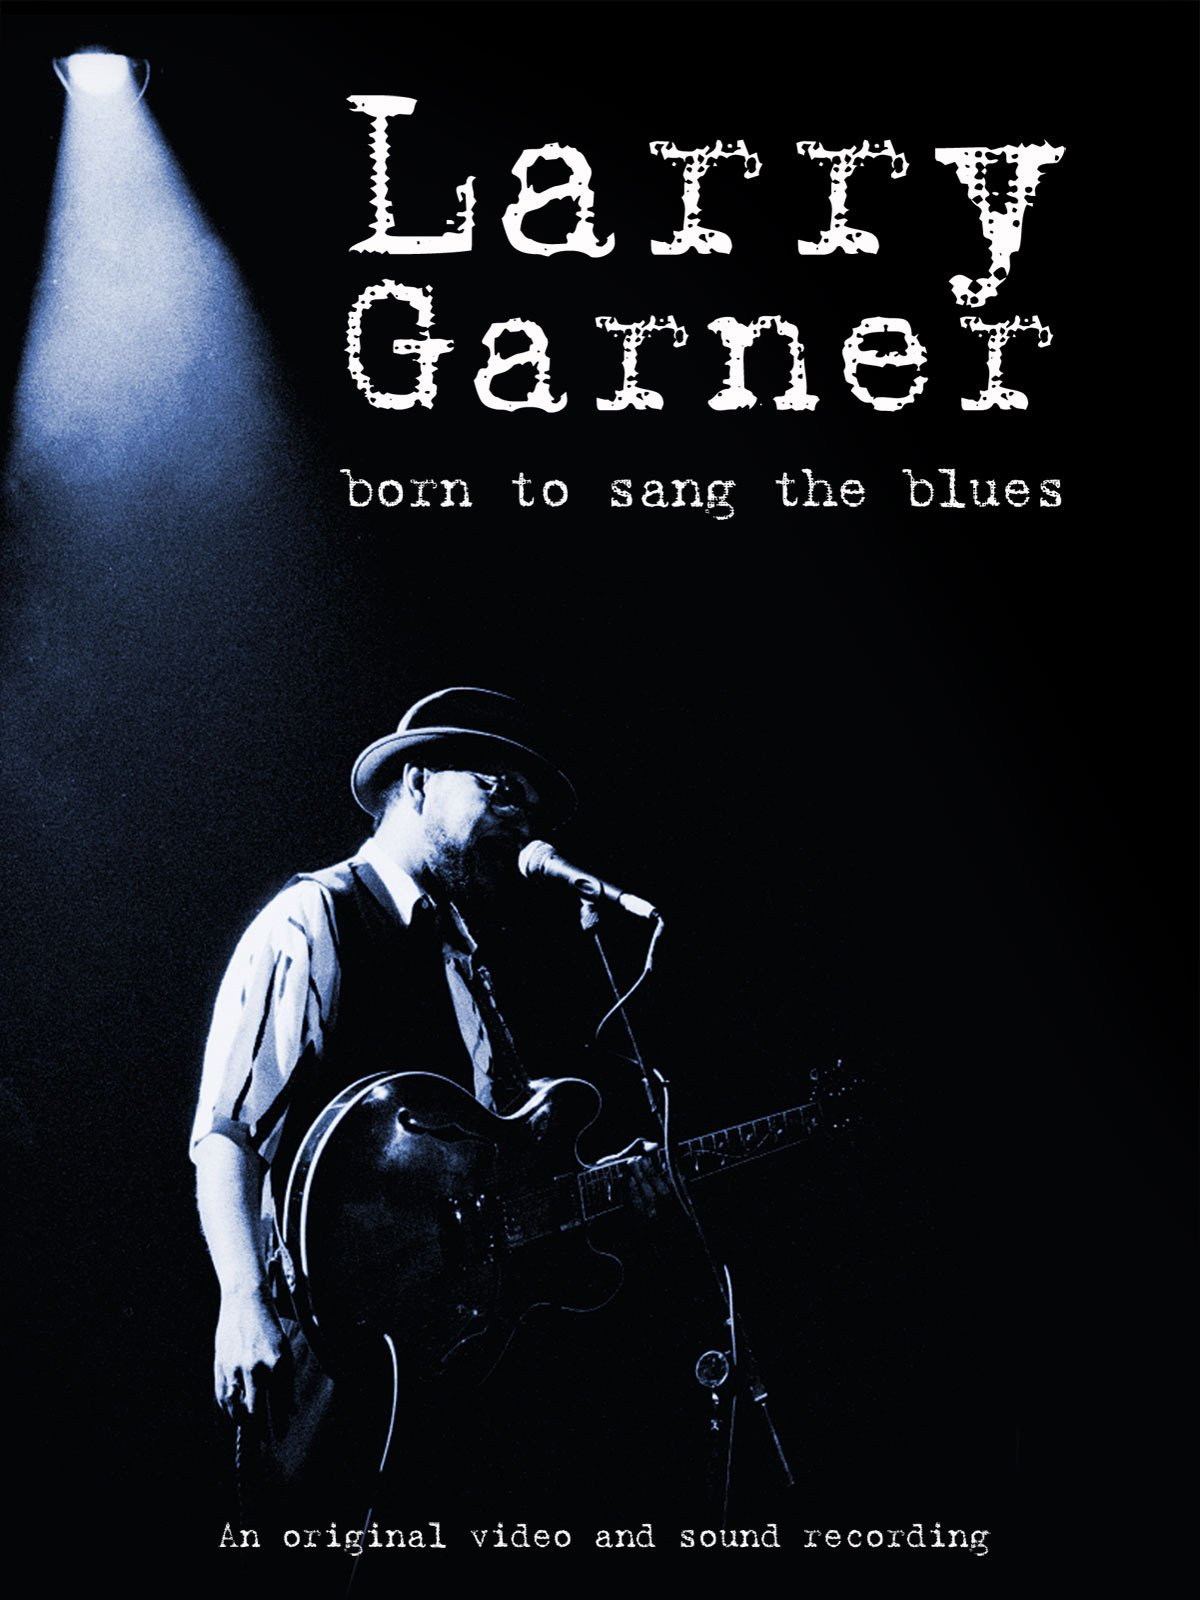 Larry Garner - Born To Sang the Blues on Amazon Prime Instant Video UK